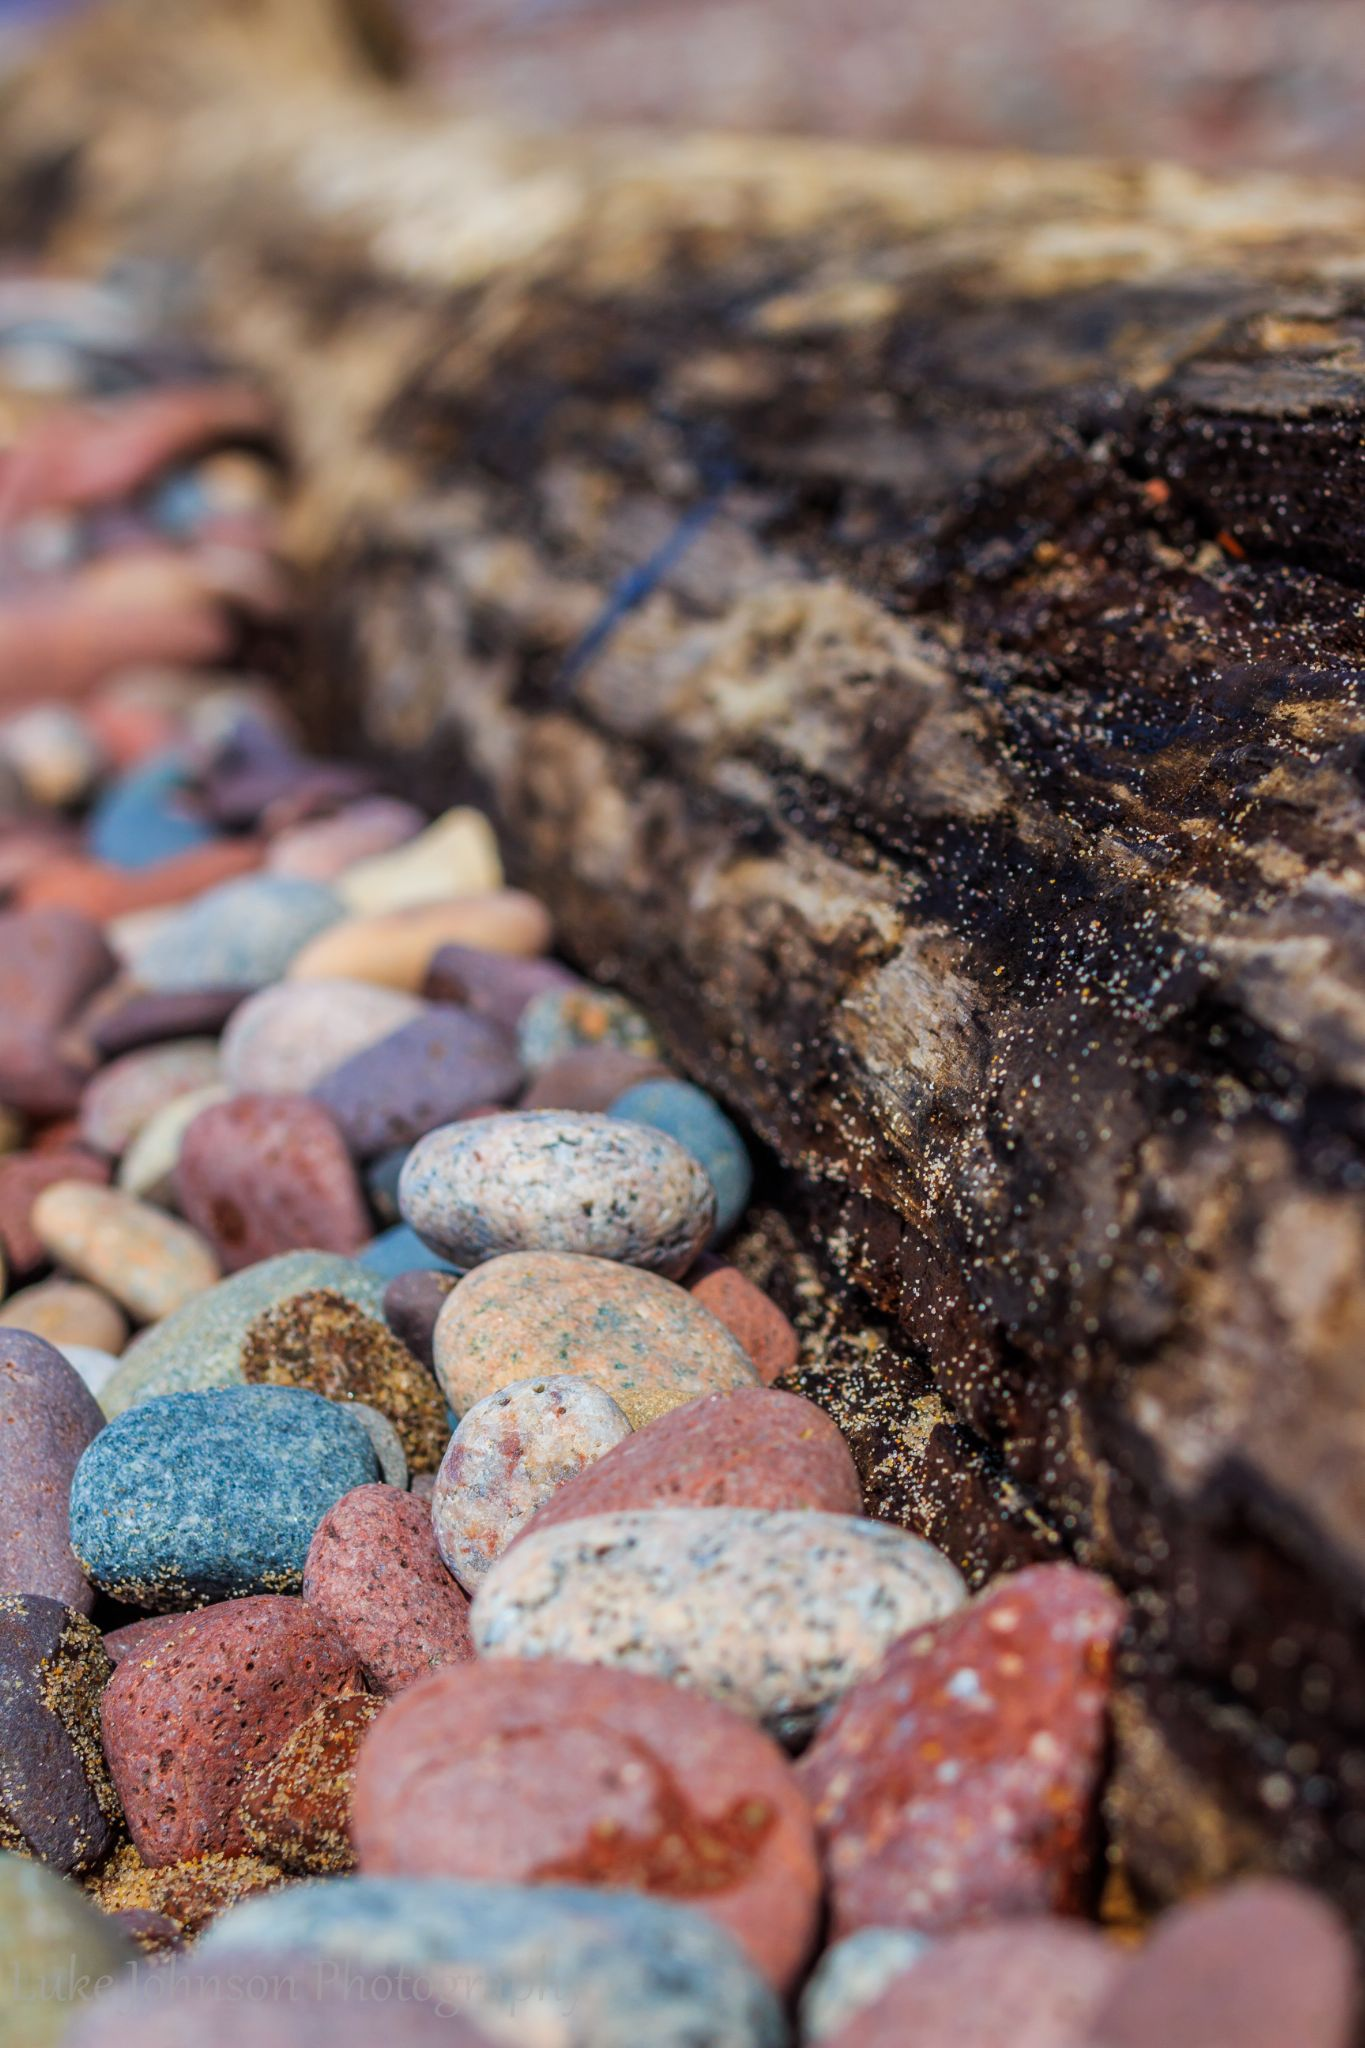 Beach Stones by Luke Johnson